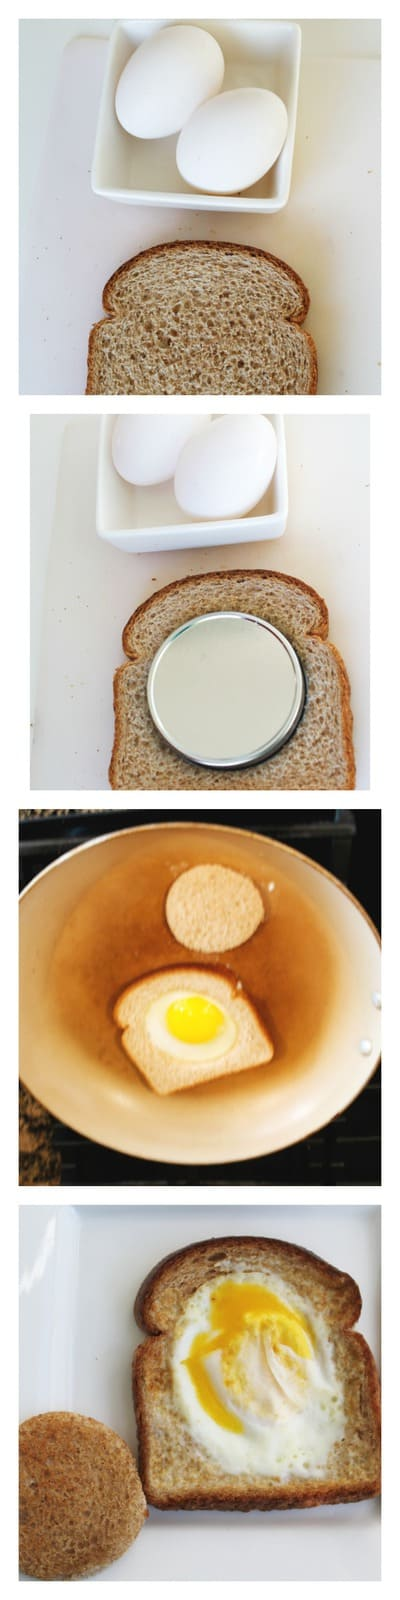 Four pictures of steps to make eggs on a basket.